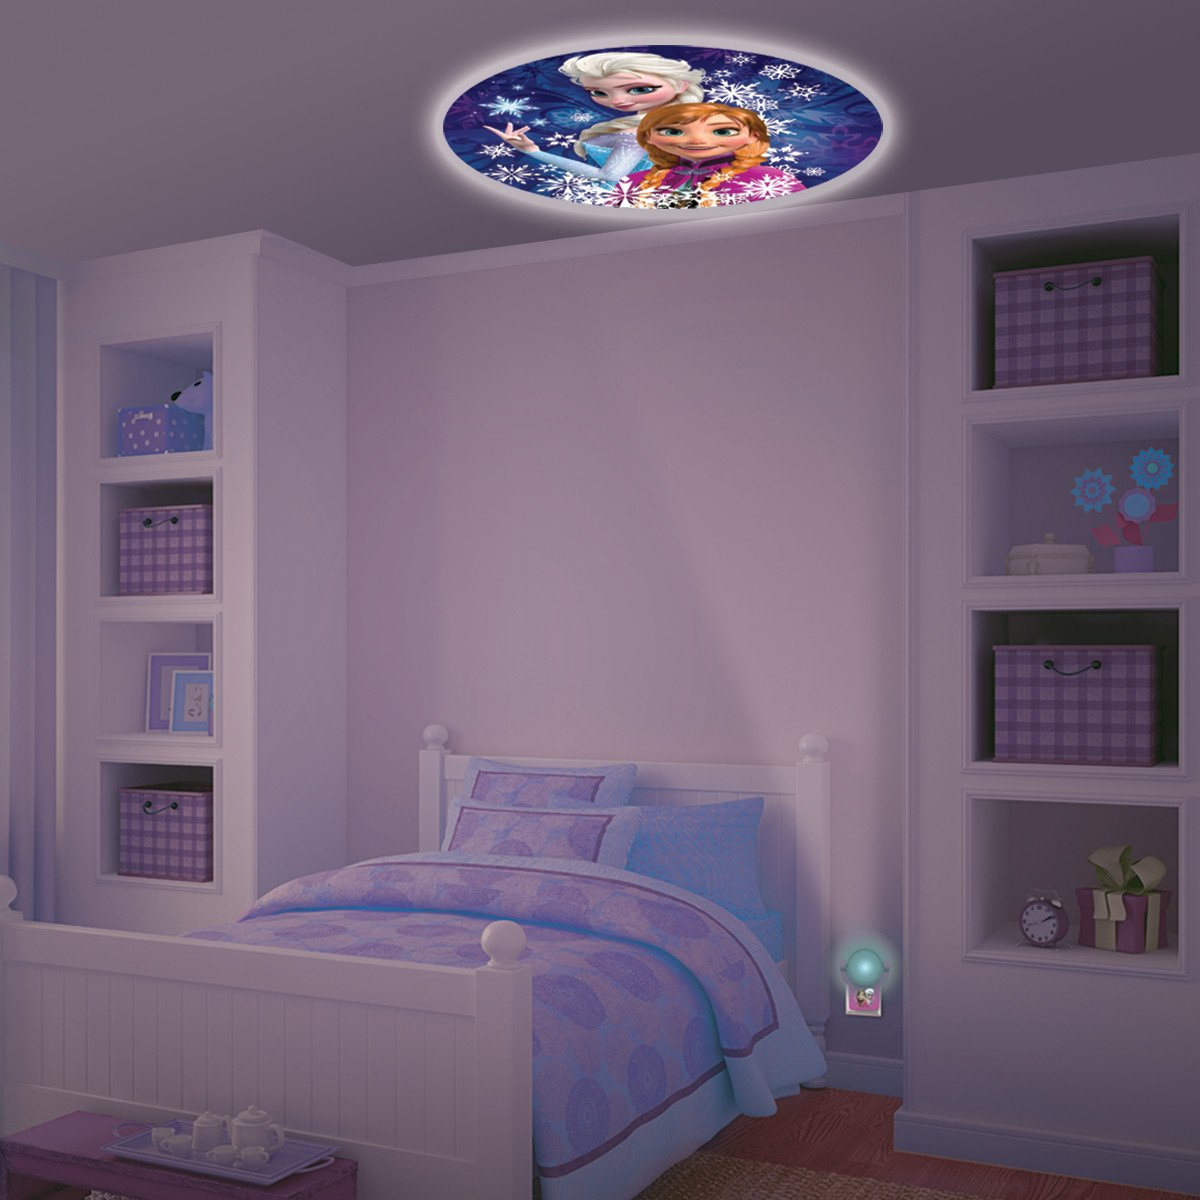 projector night lights disney frozen led kids boys girls bedroom wall ceiling ebay. Black Bedroom Furniture Sets. Home Design Ideas